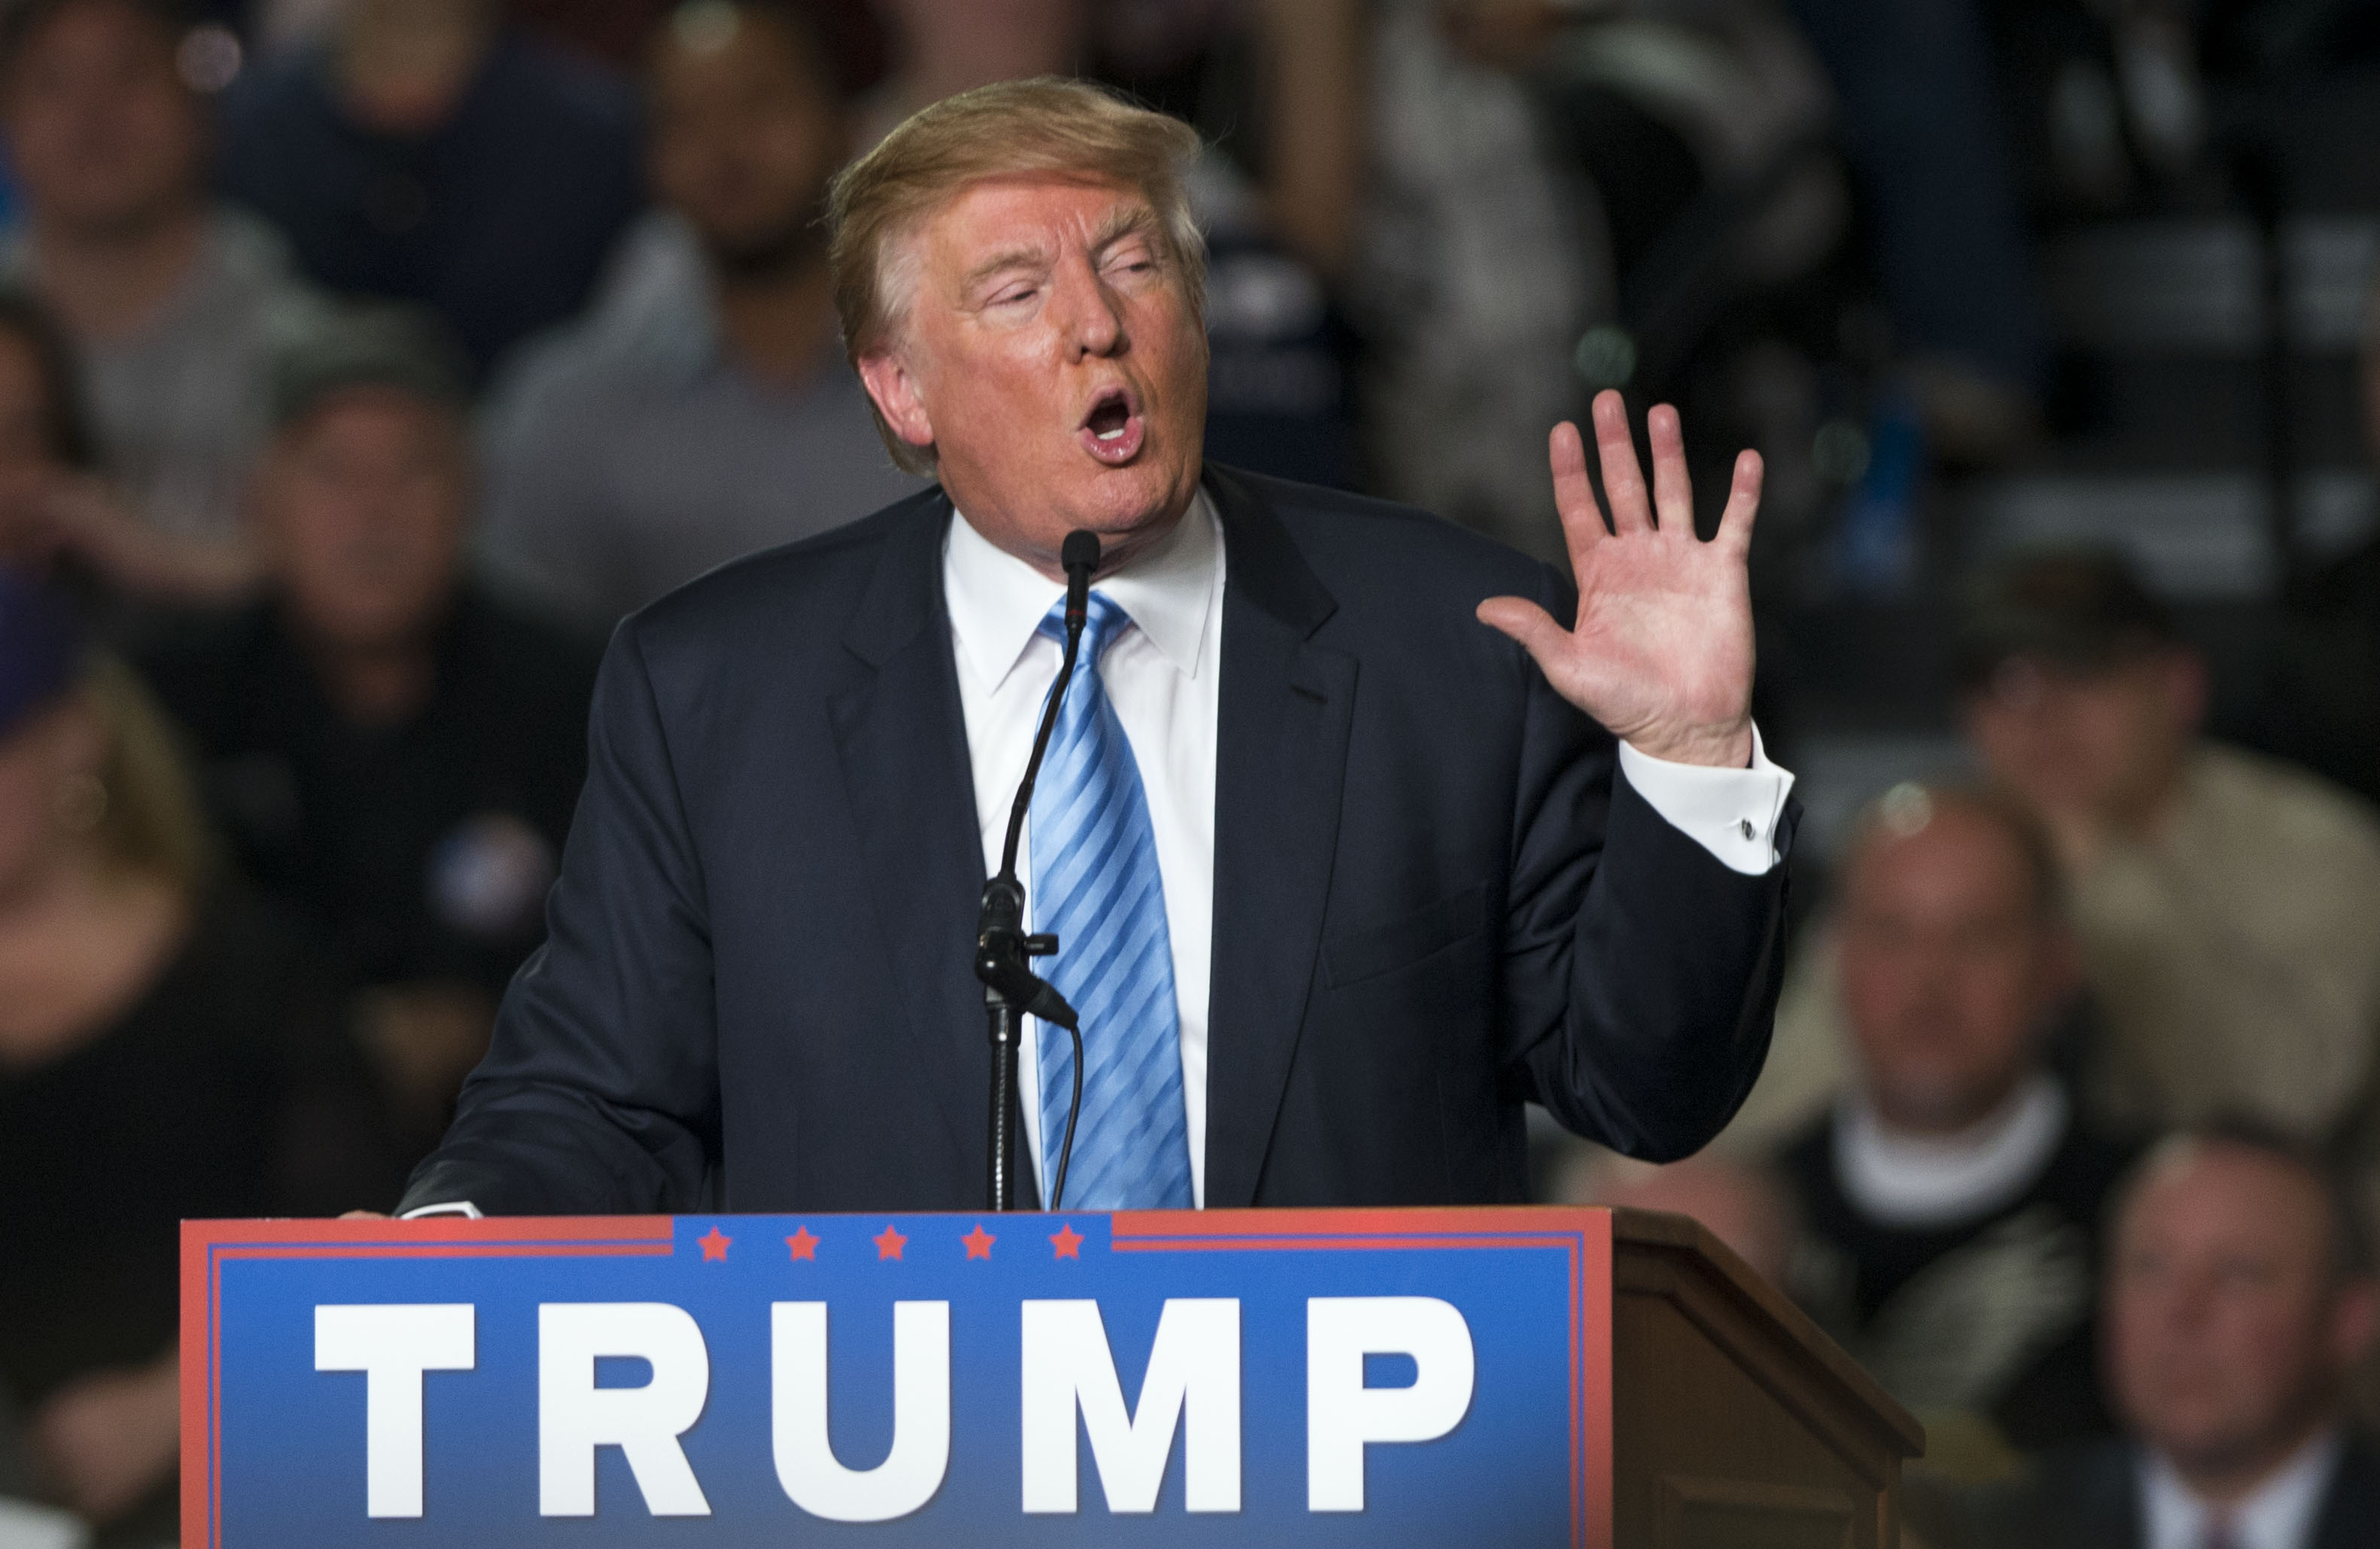 Donald Trump recently announced his intention to end birthright citizenship.